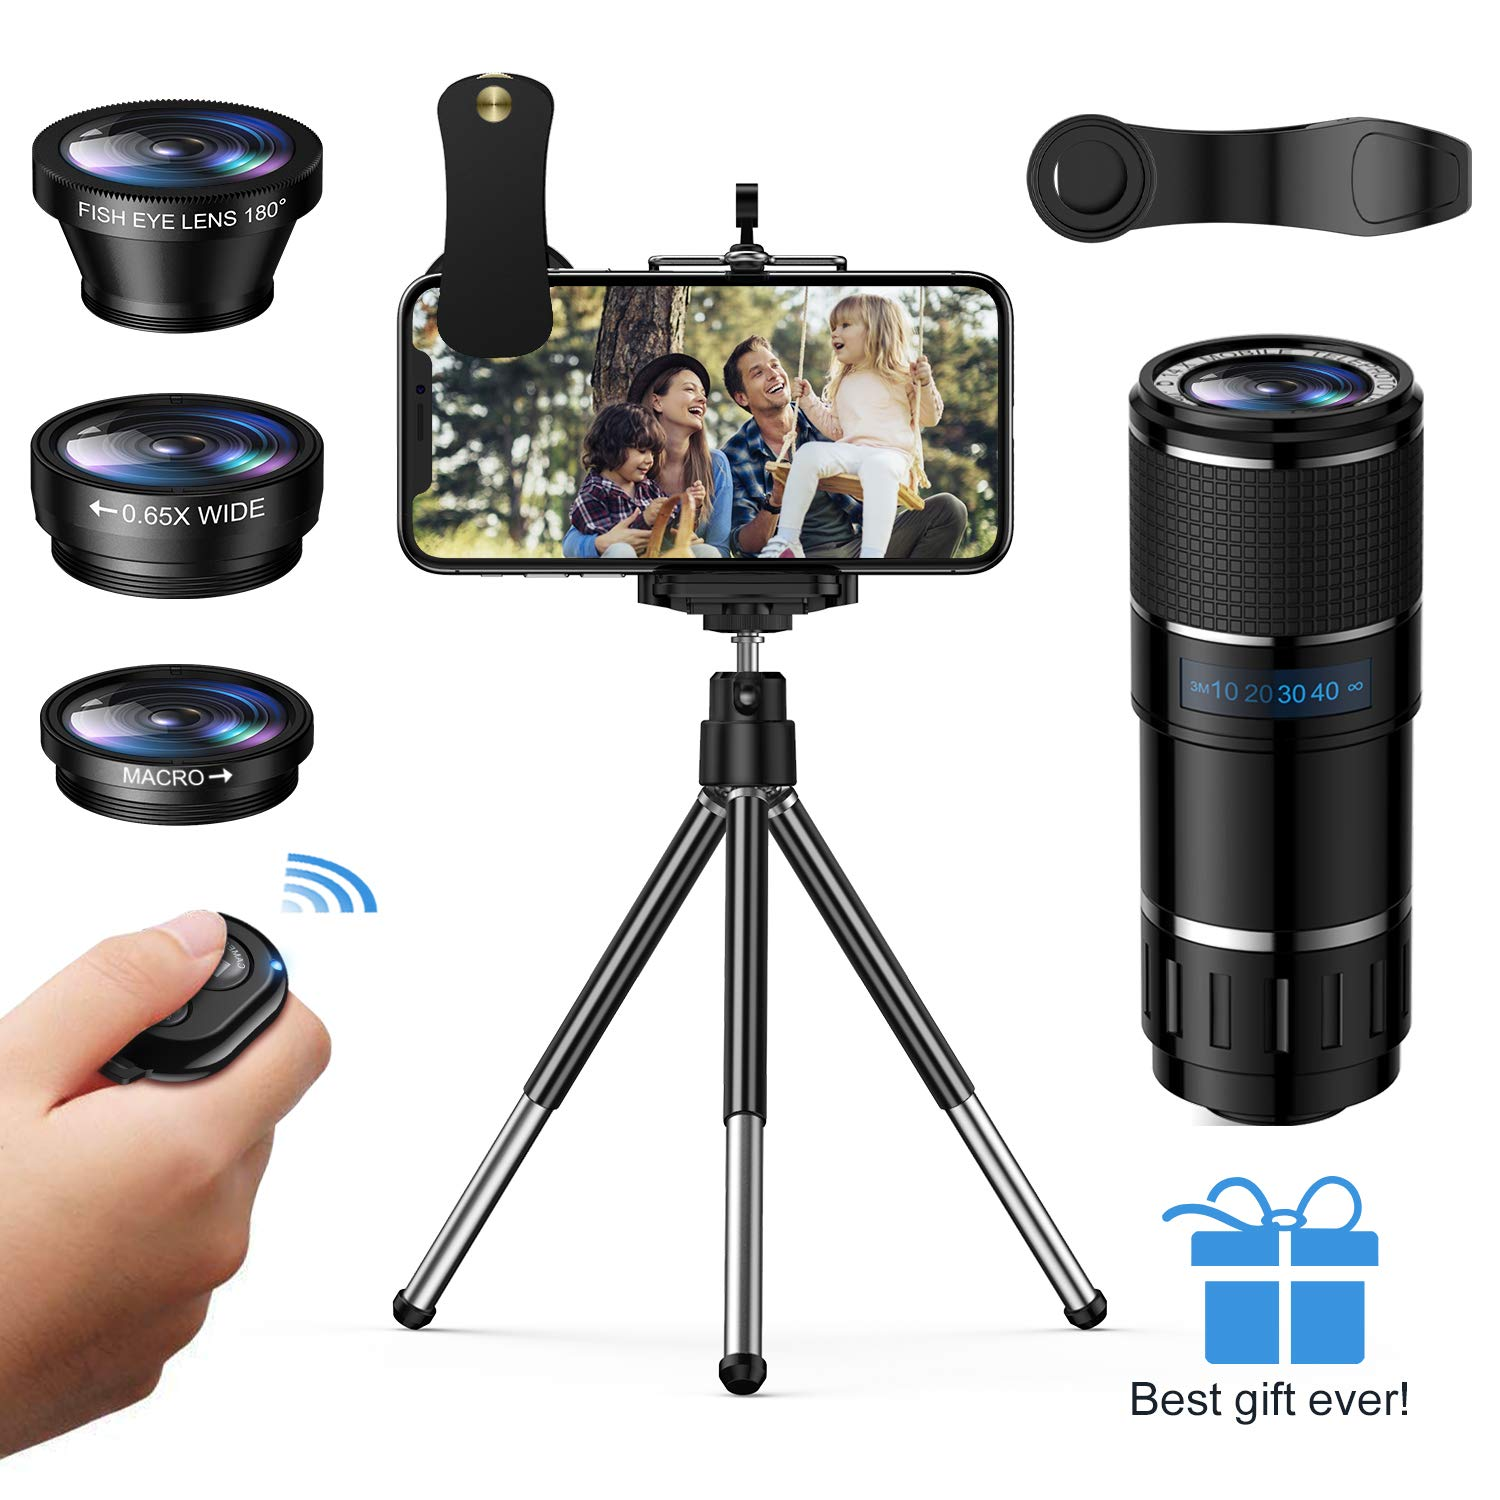 Phone Camera Lens, Vorida 6-in-1 Photography Lens Kit,14X Pro Telephoto Lens+180°Fisheye +0.65X Wide Angle &15X Macro Lens+Tripod+Remote Shutter Compatible for iPhone,Samsung & Android Smartphones by Vorida